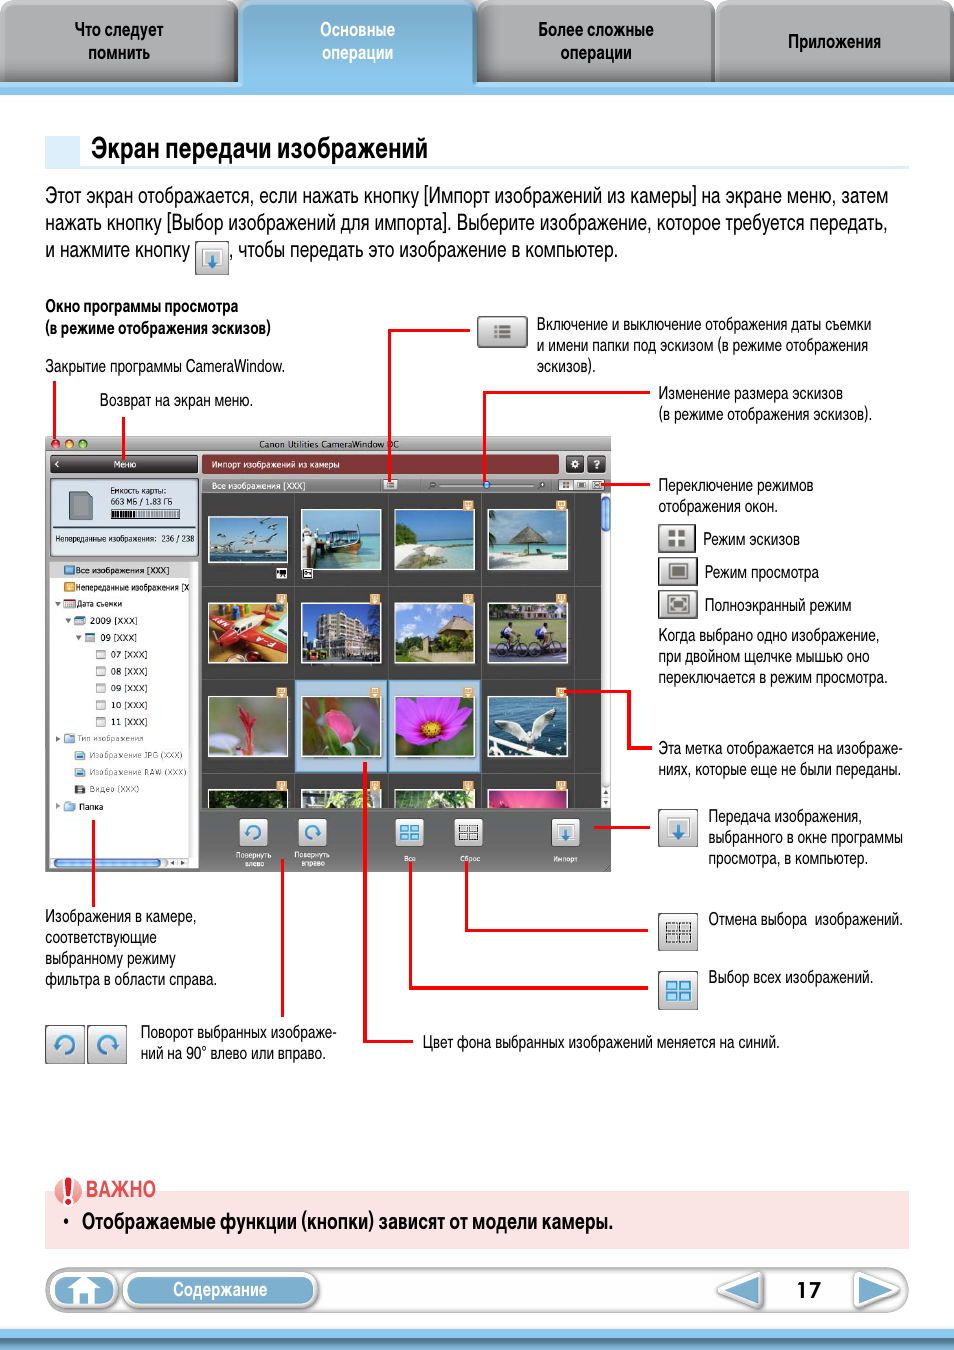 Canon utilities photostitch launcher Alone - English-Spanish Dictionary - m